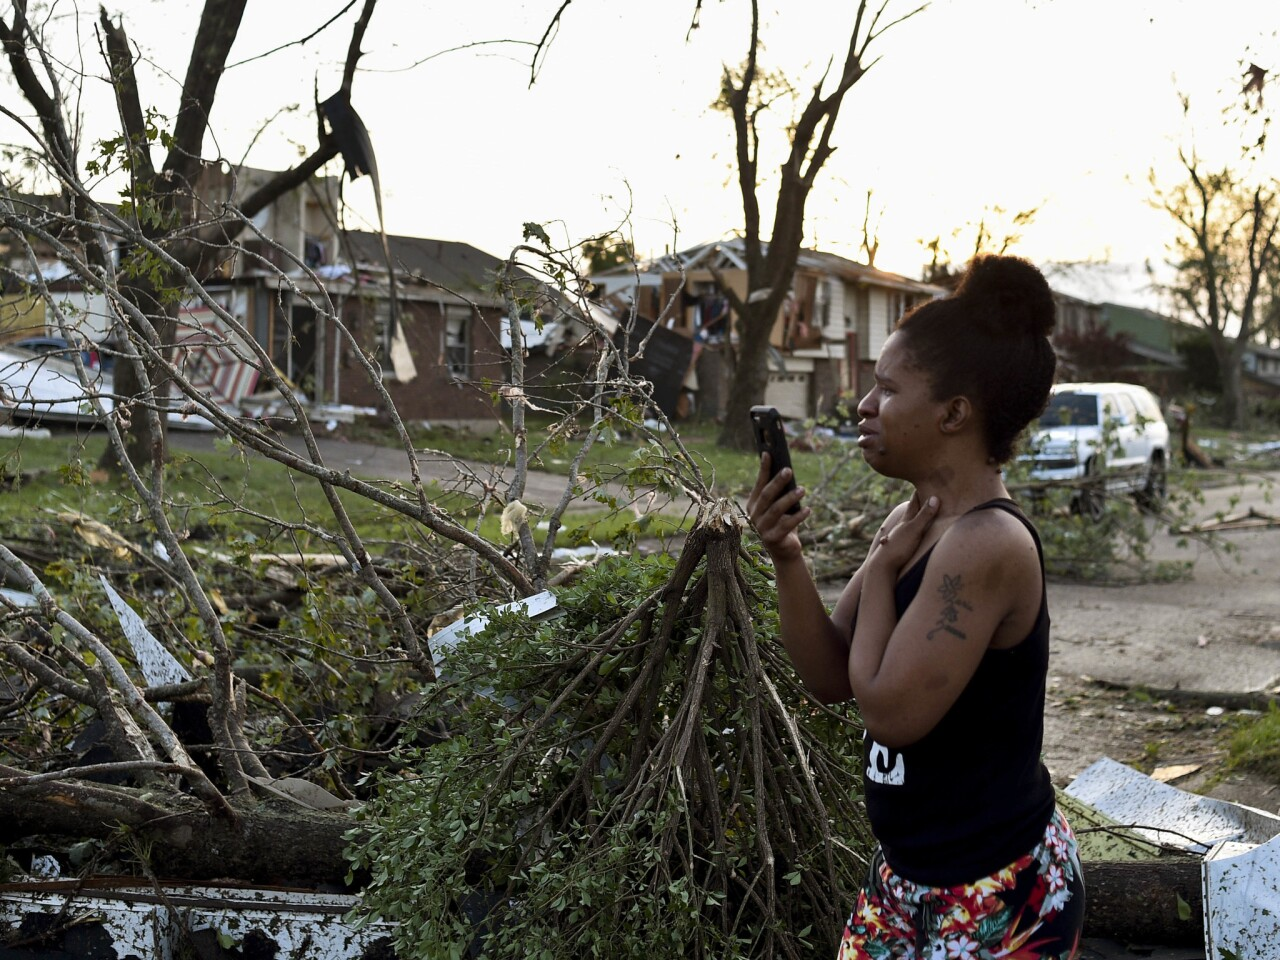 Tornadoes leave trail of destruction across Ohio and Indiana